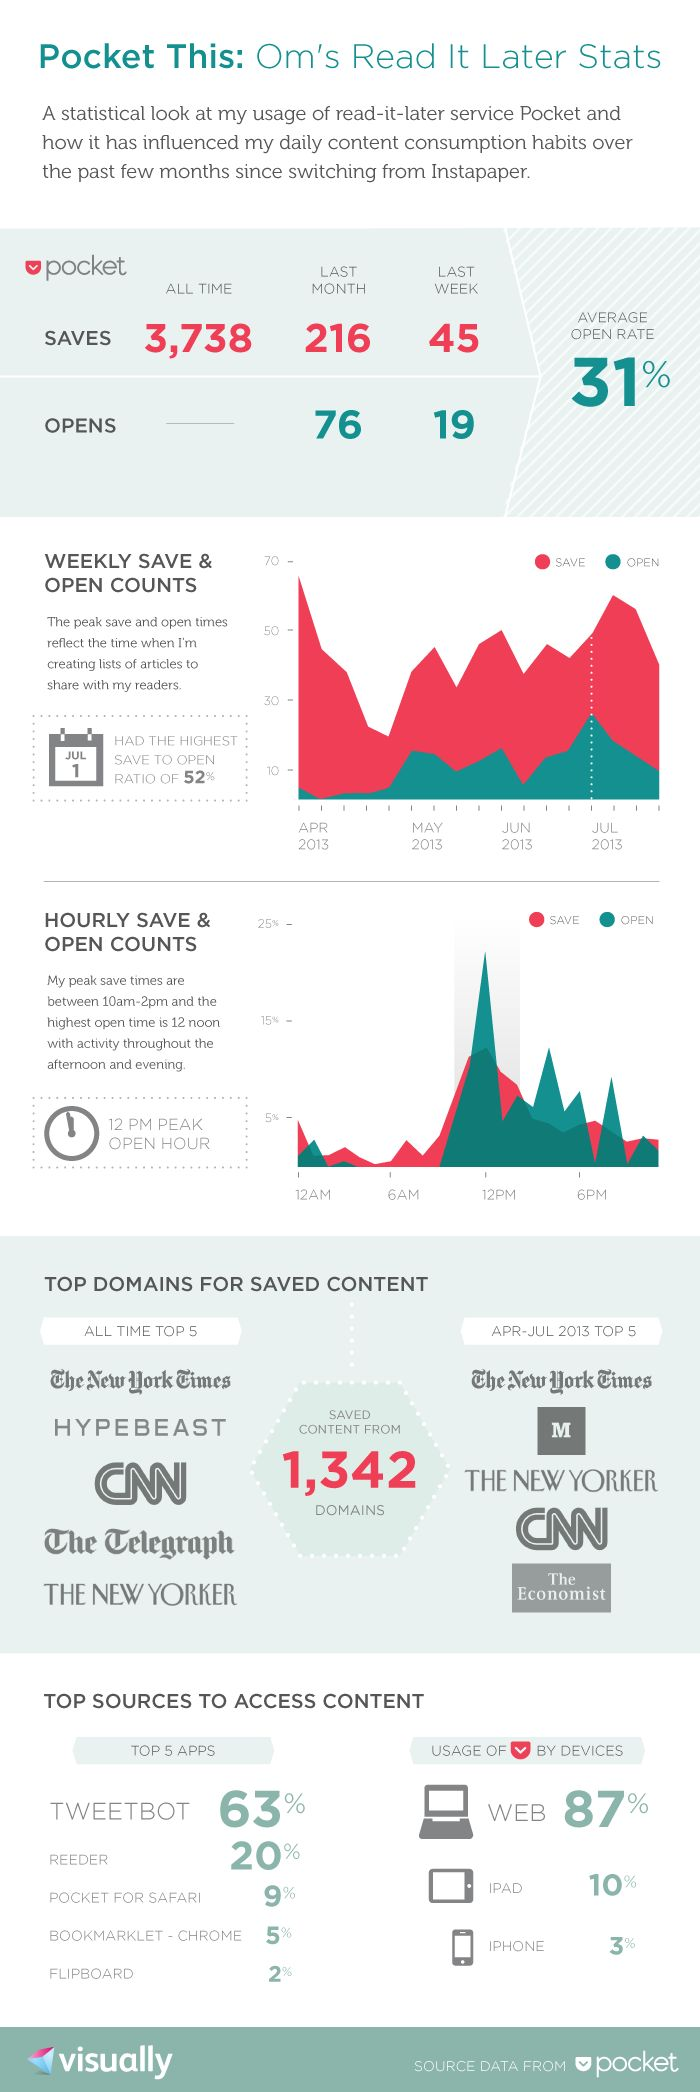 Do you read what you save? Here's an infographic of one (typical?) user's 'save to read it later' habits